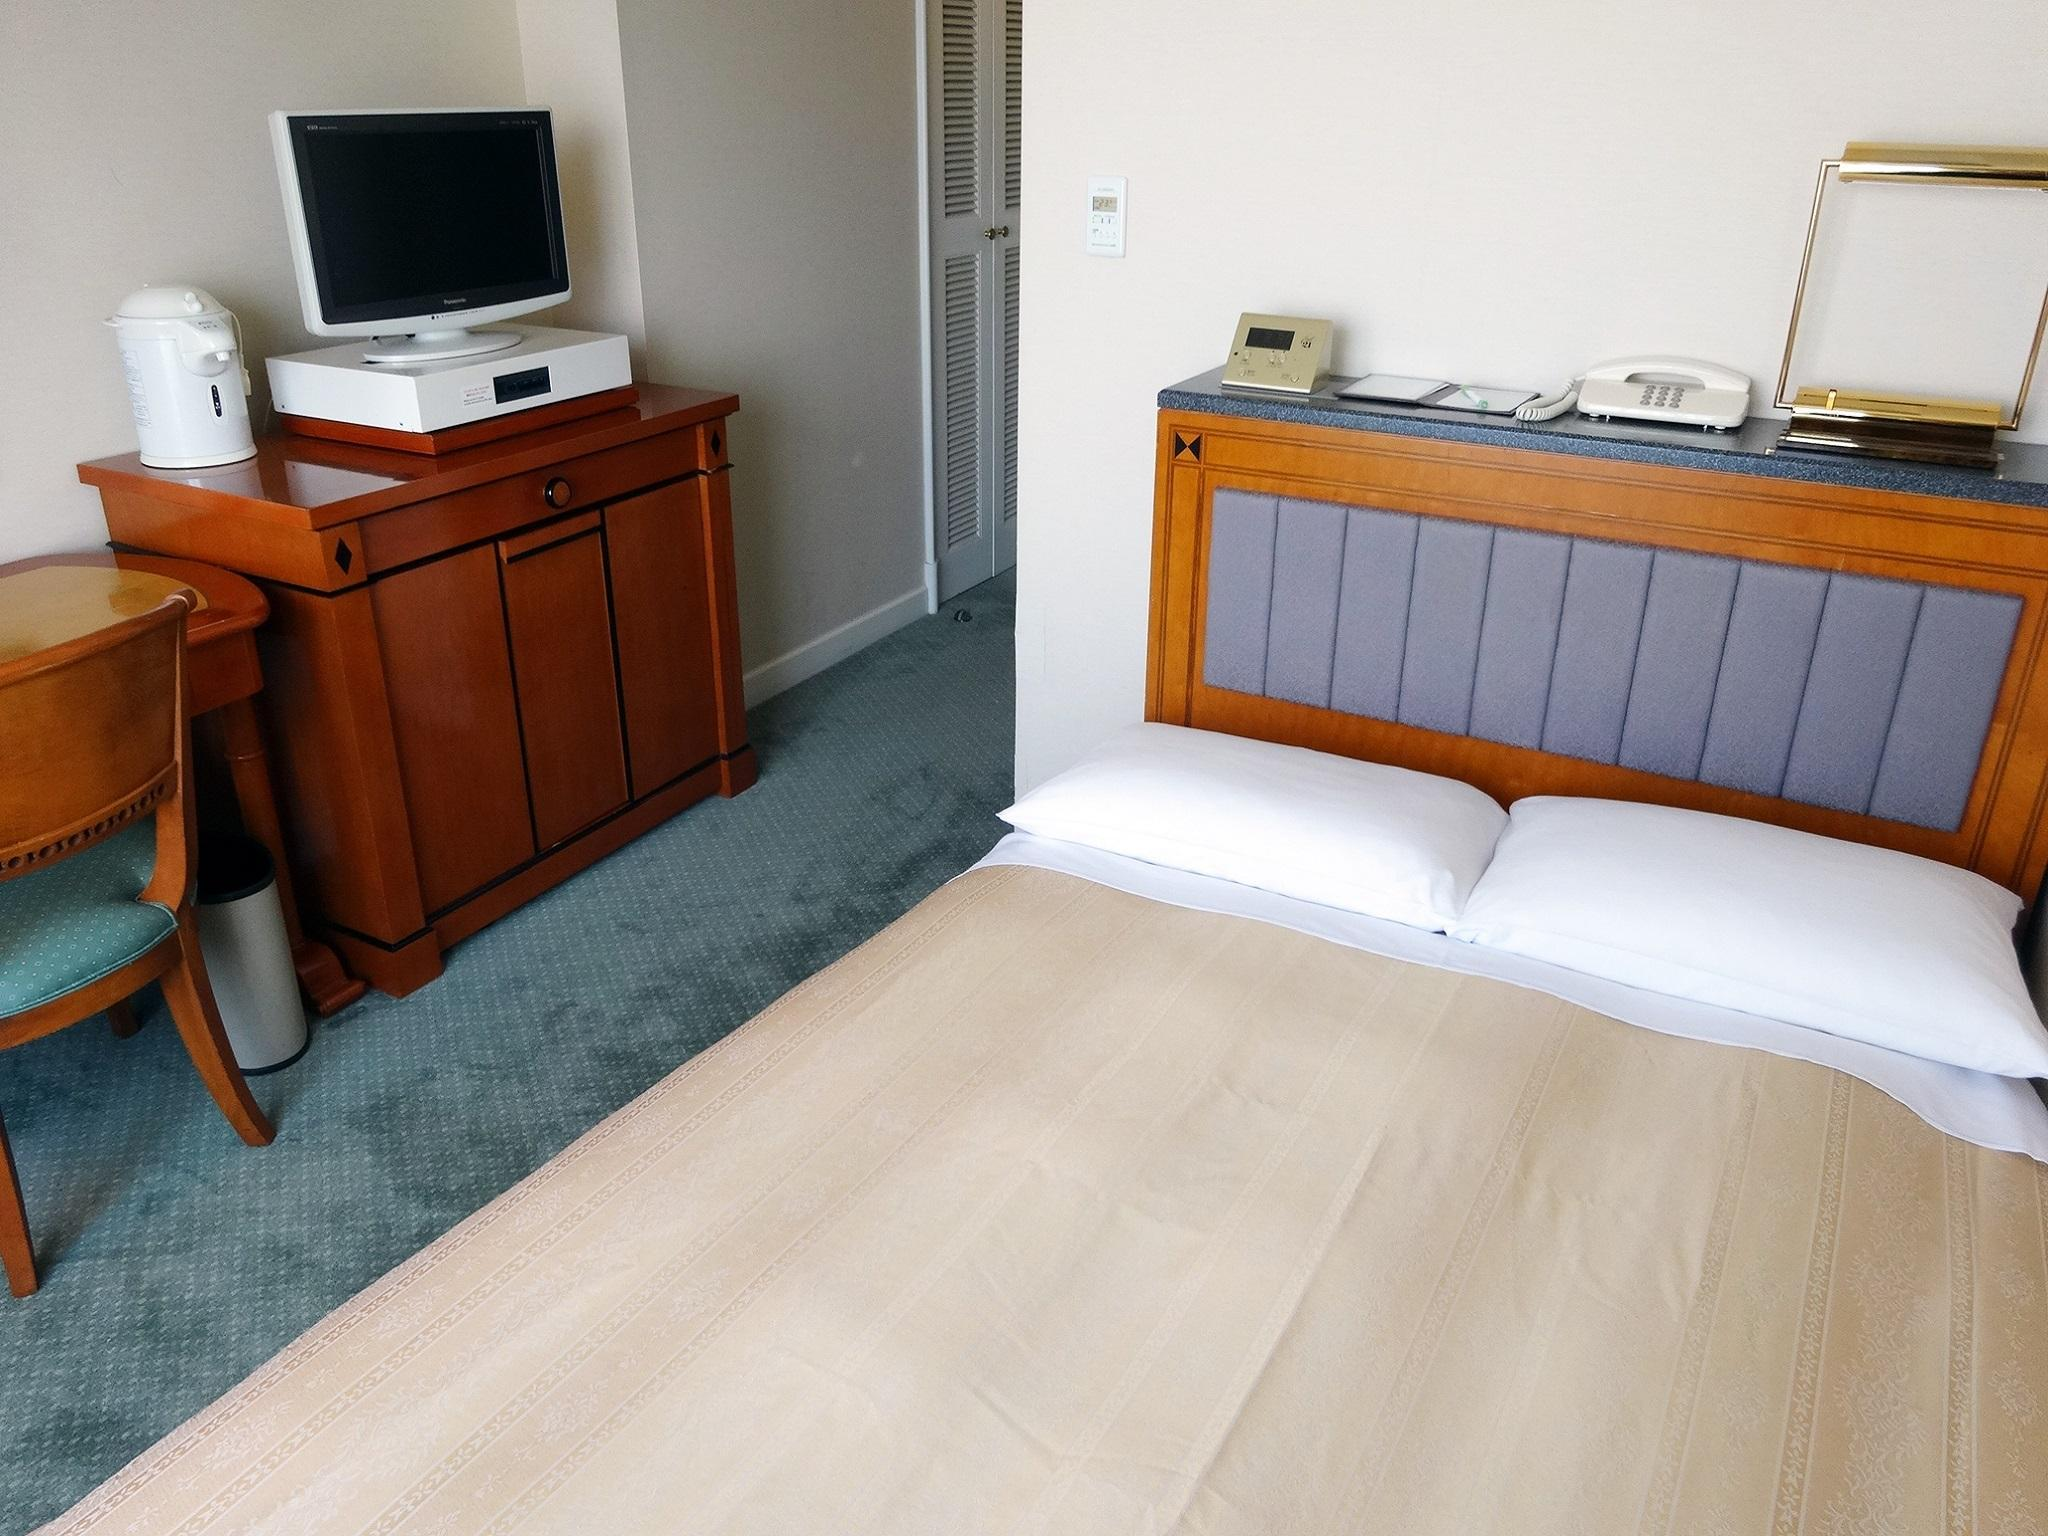 Low Floor Small Single Room - Smoking, Check-In After 9:00 PM, Check-Out Before 11:00 AM